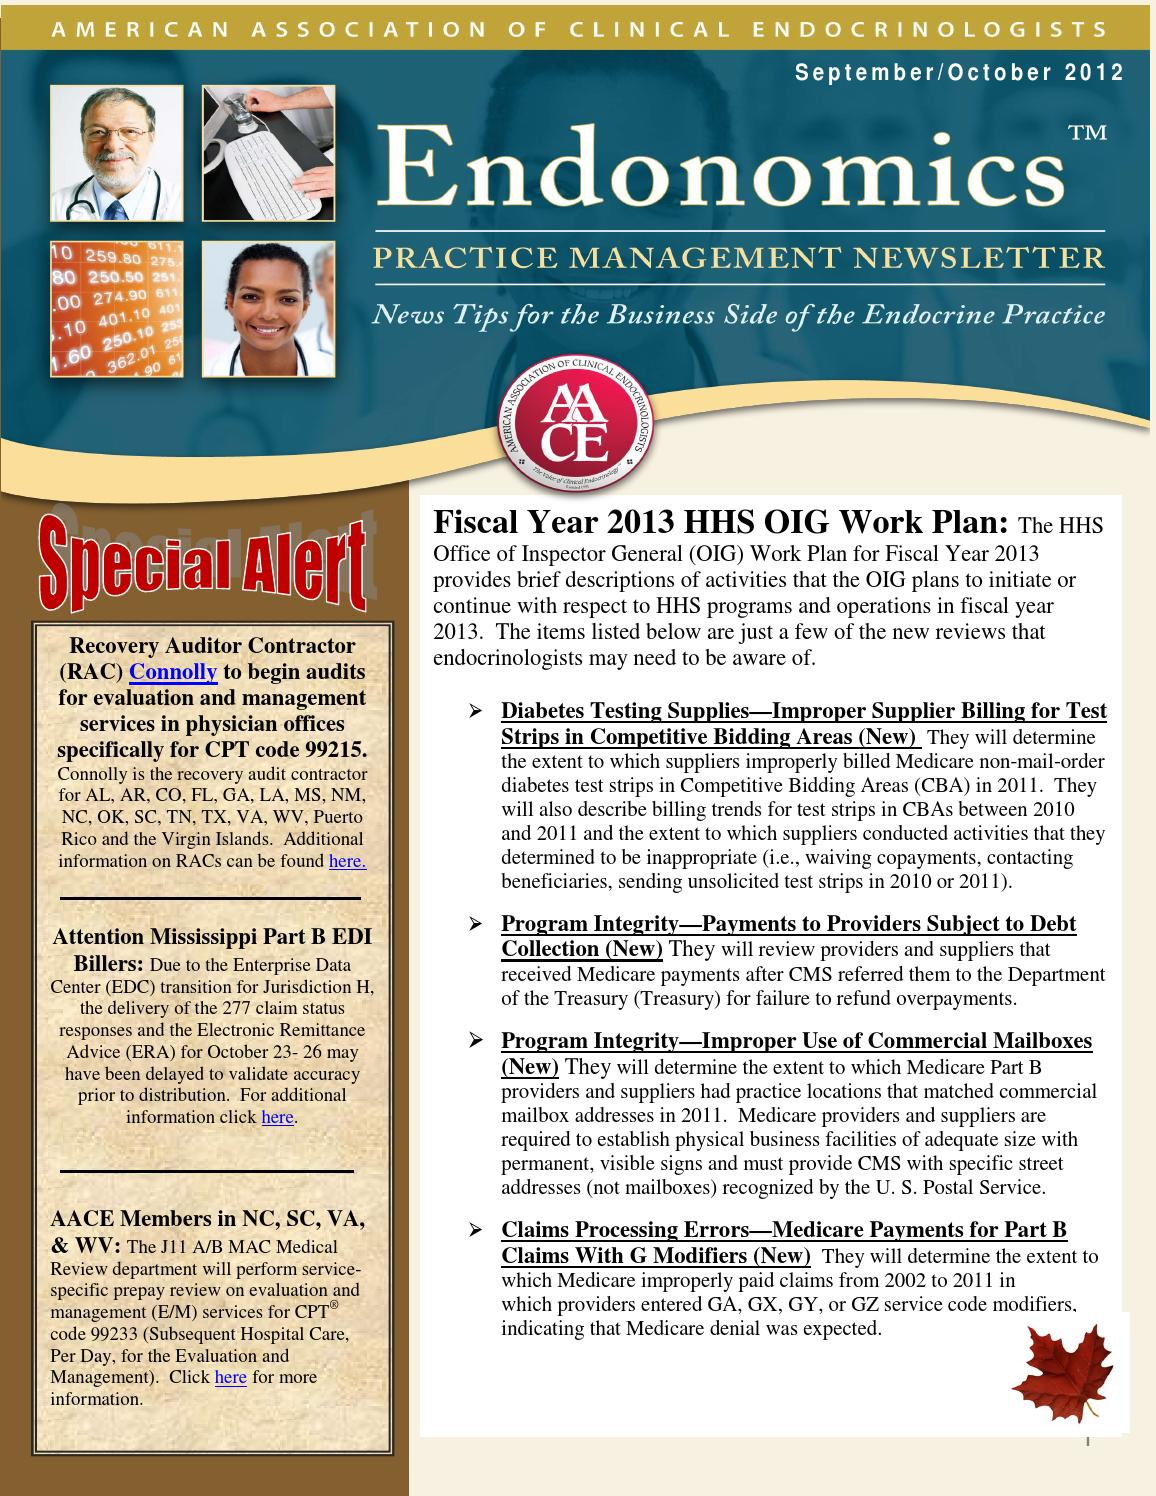 Endonomics an AACE Practice Management Newsletter SeptemberOctober